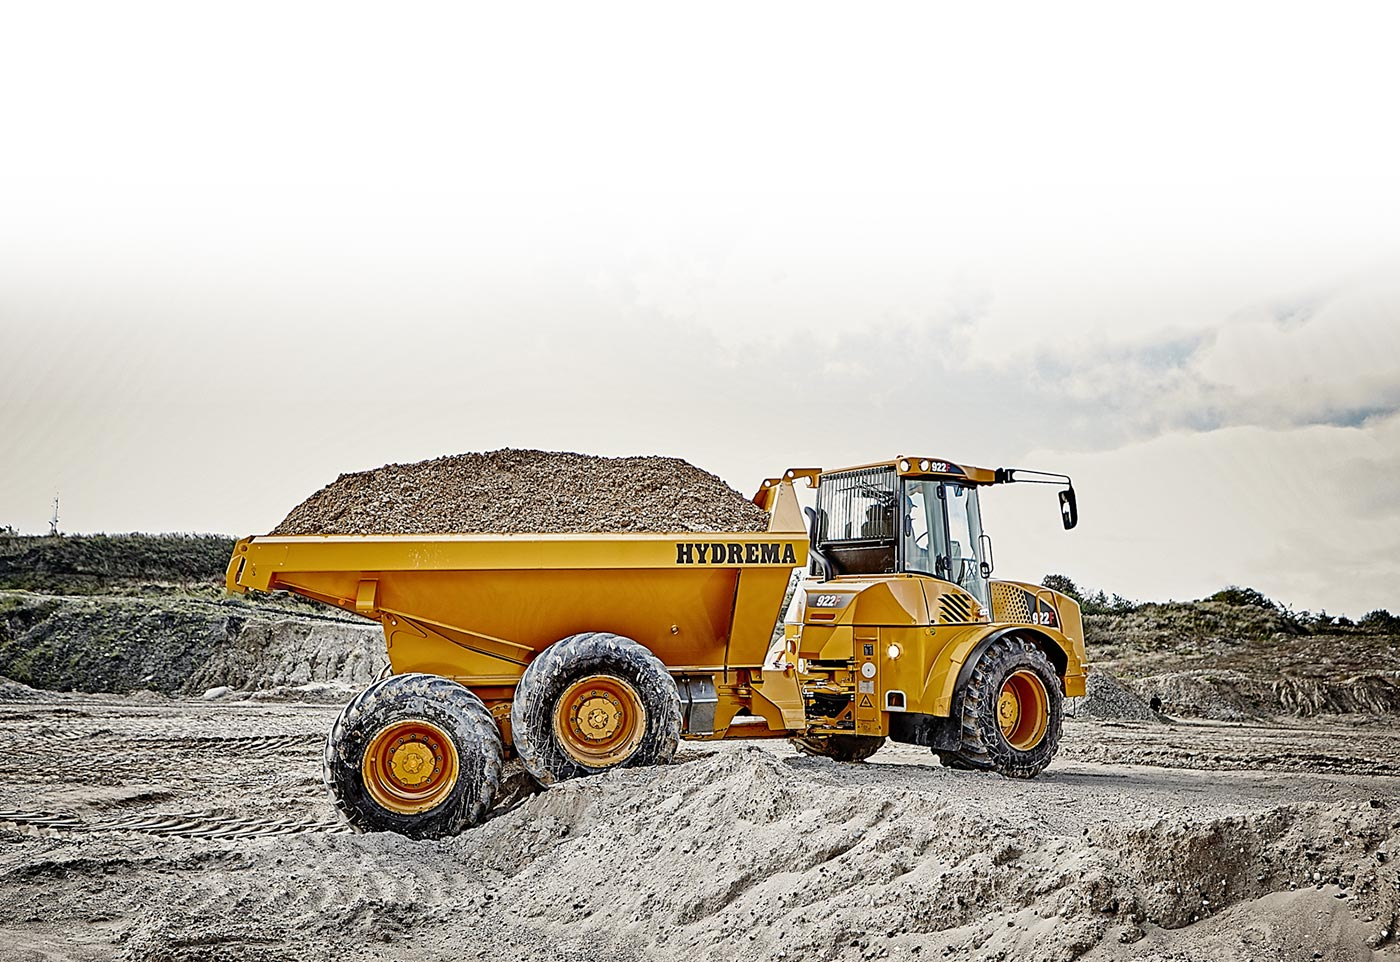 Hydrema 922F-Series dump truck with a full load of gravel